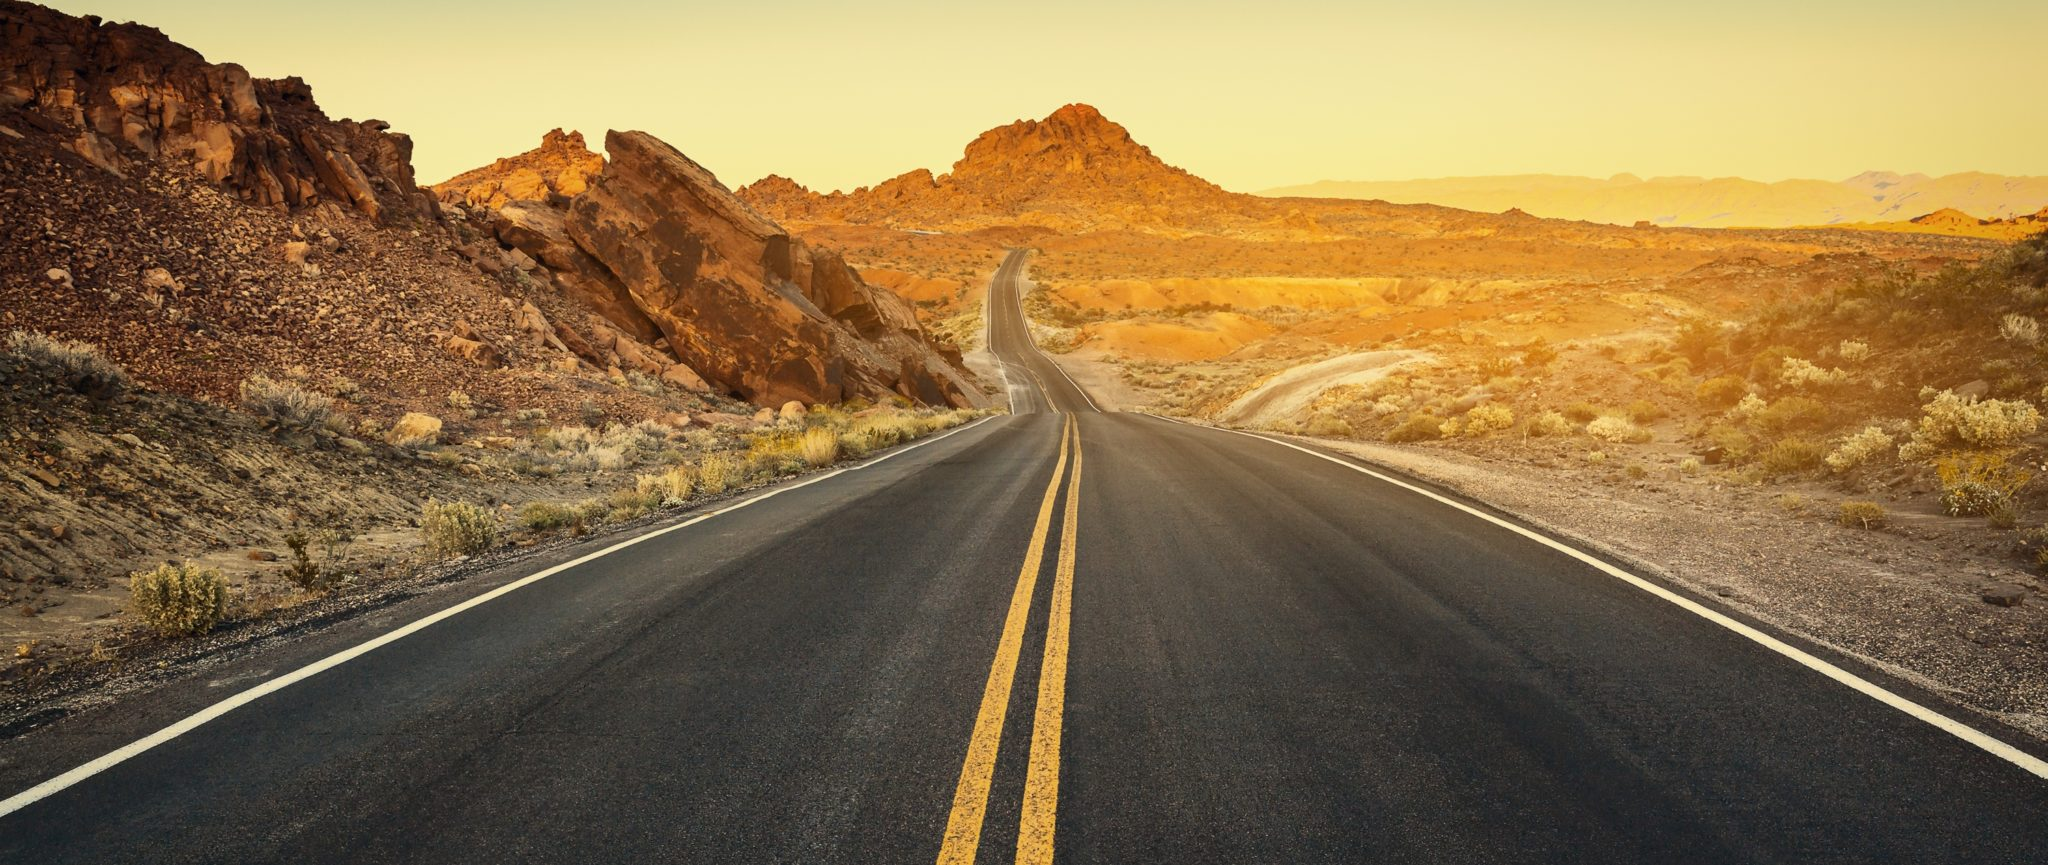 Nevada Road at Sunset Picture